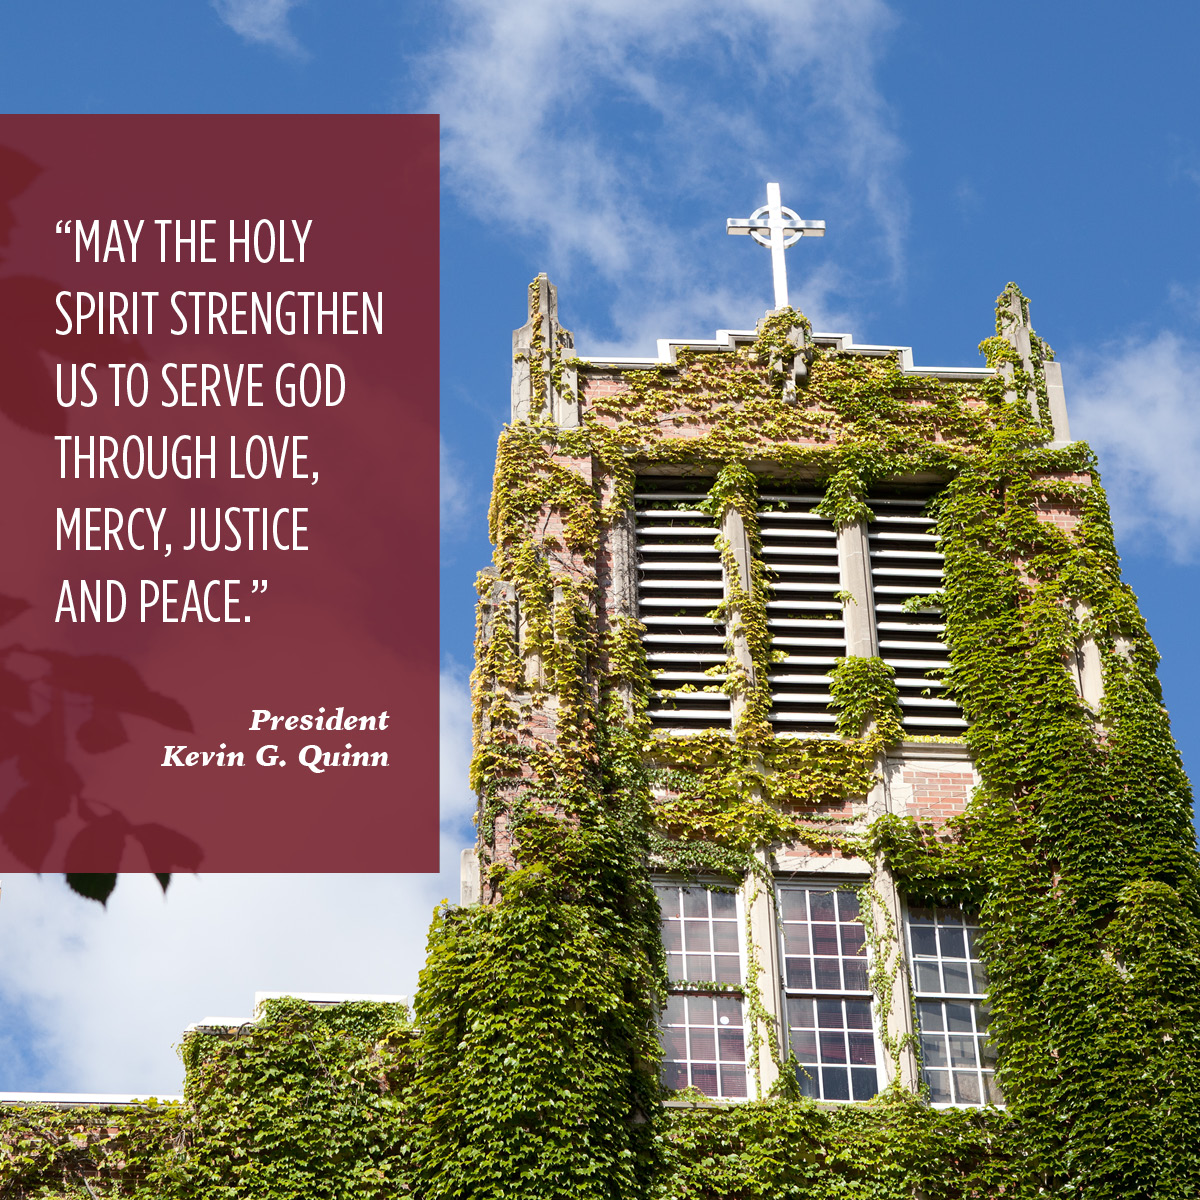 """MAY THE HOLY SPIRIT STRENGTHEN US TO SERVE GOD THROUGH LOVE, MERCY, JUSTICE AND PEACE."" President Kevin G. Quinn"